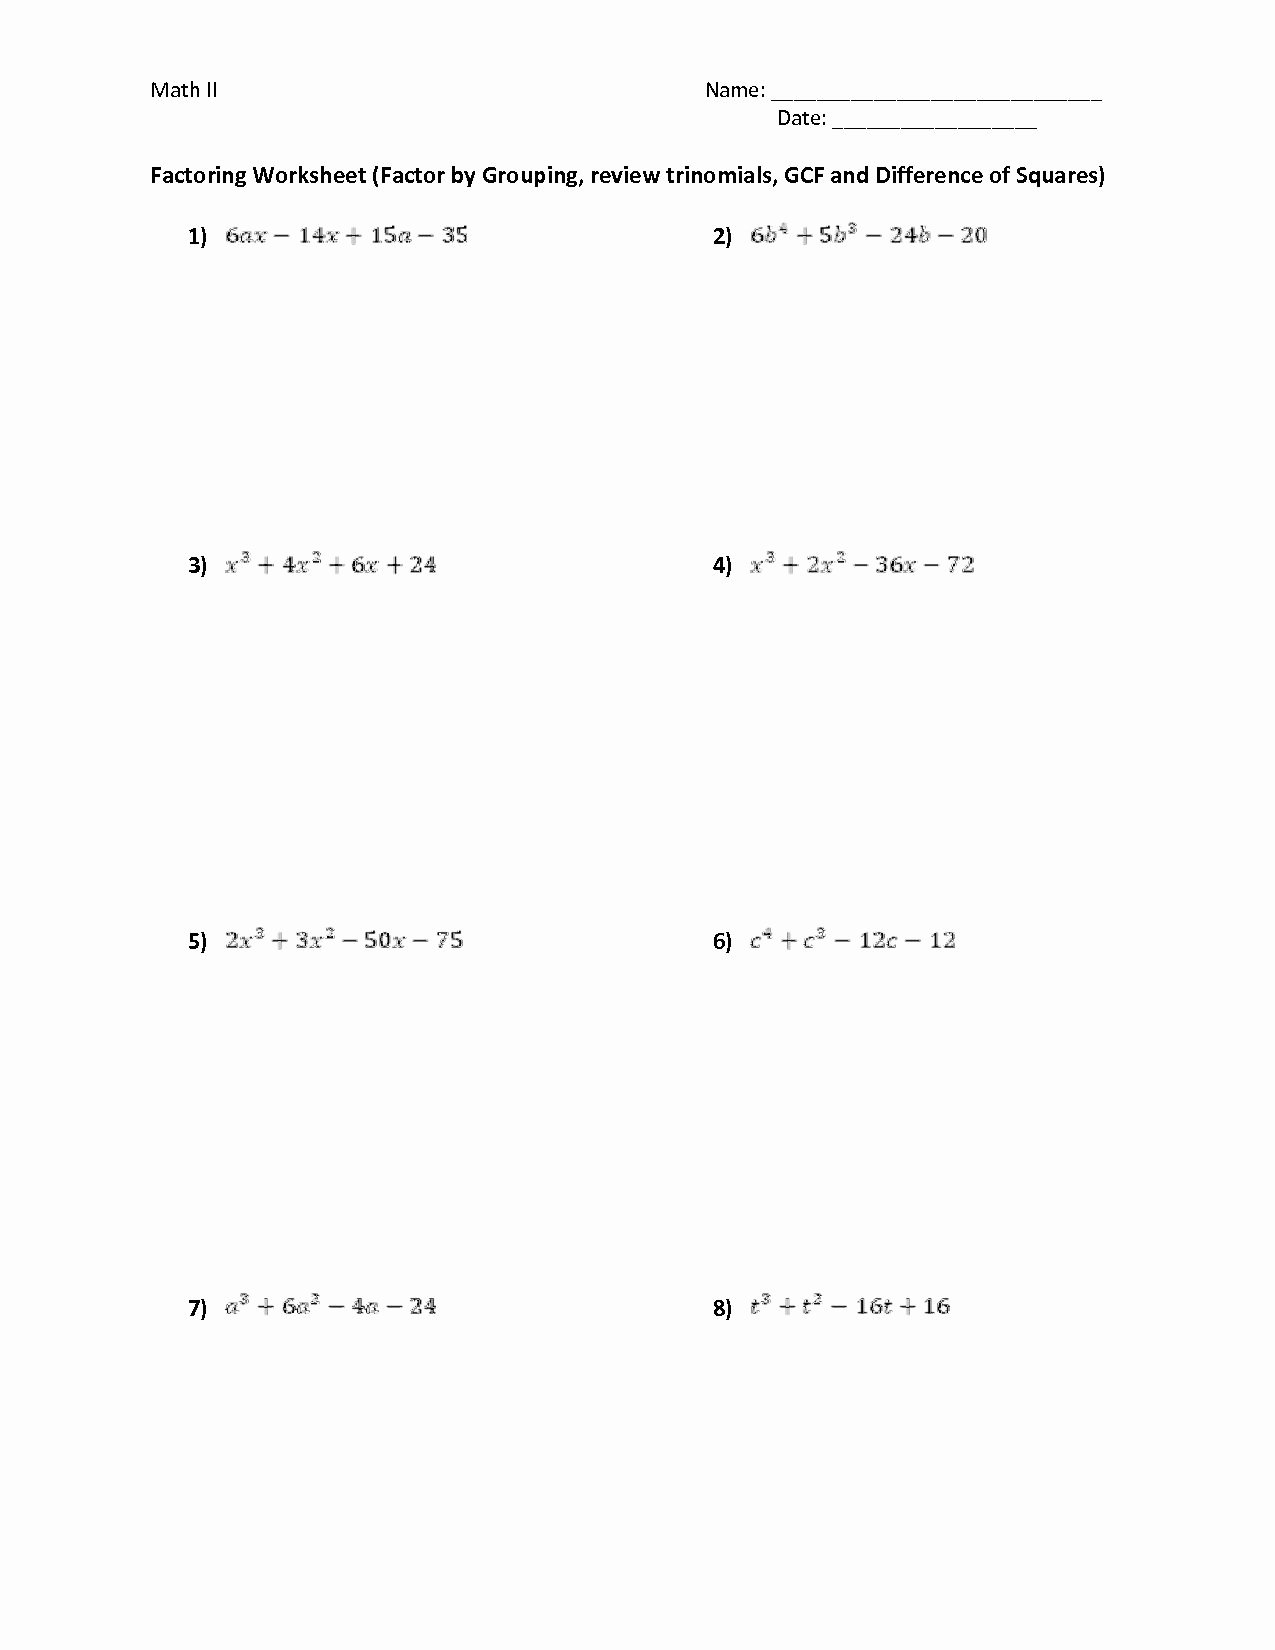 Factoring by Grouping Worksheet Answers Inspirational Factoring by Grouping Worksheet Answers Lovely 13 Best